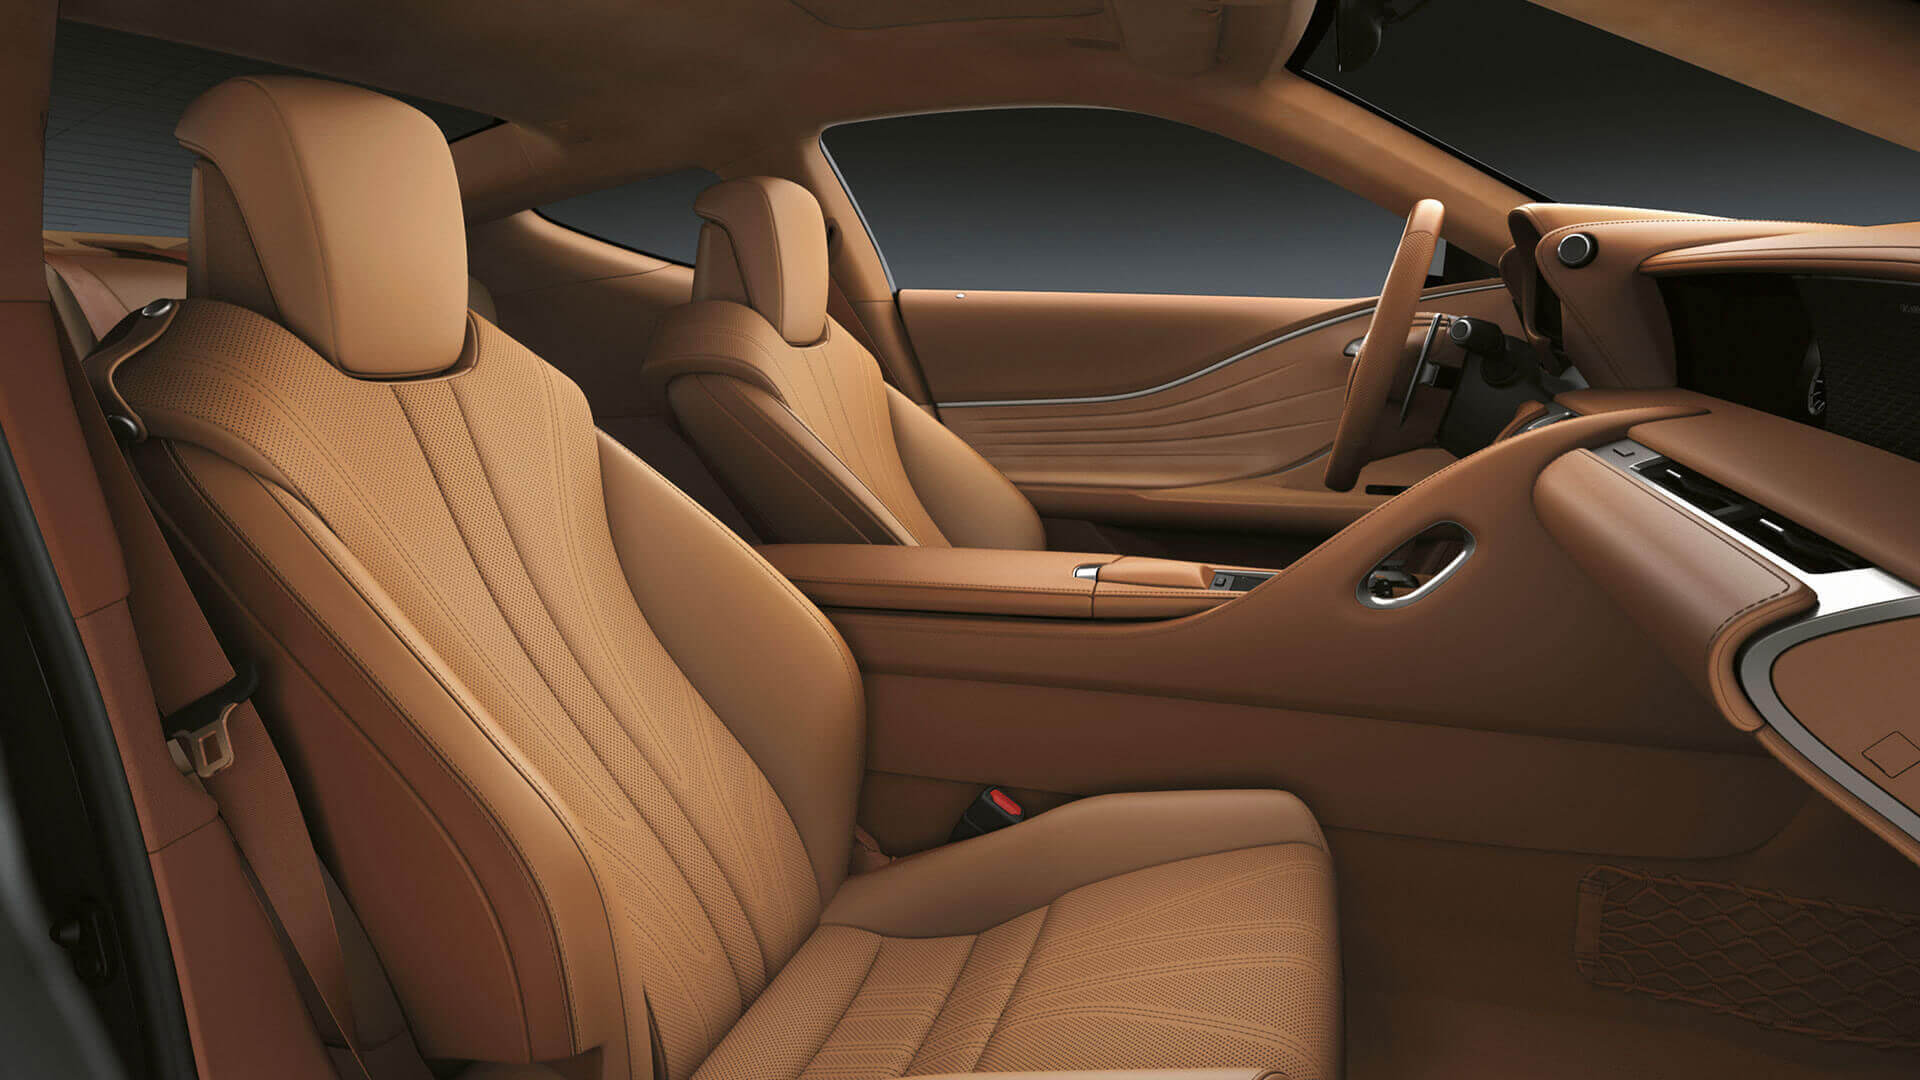 2017 lexus lc 500h features leather seats